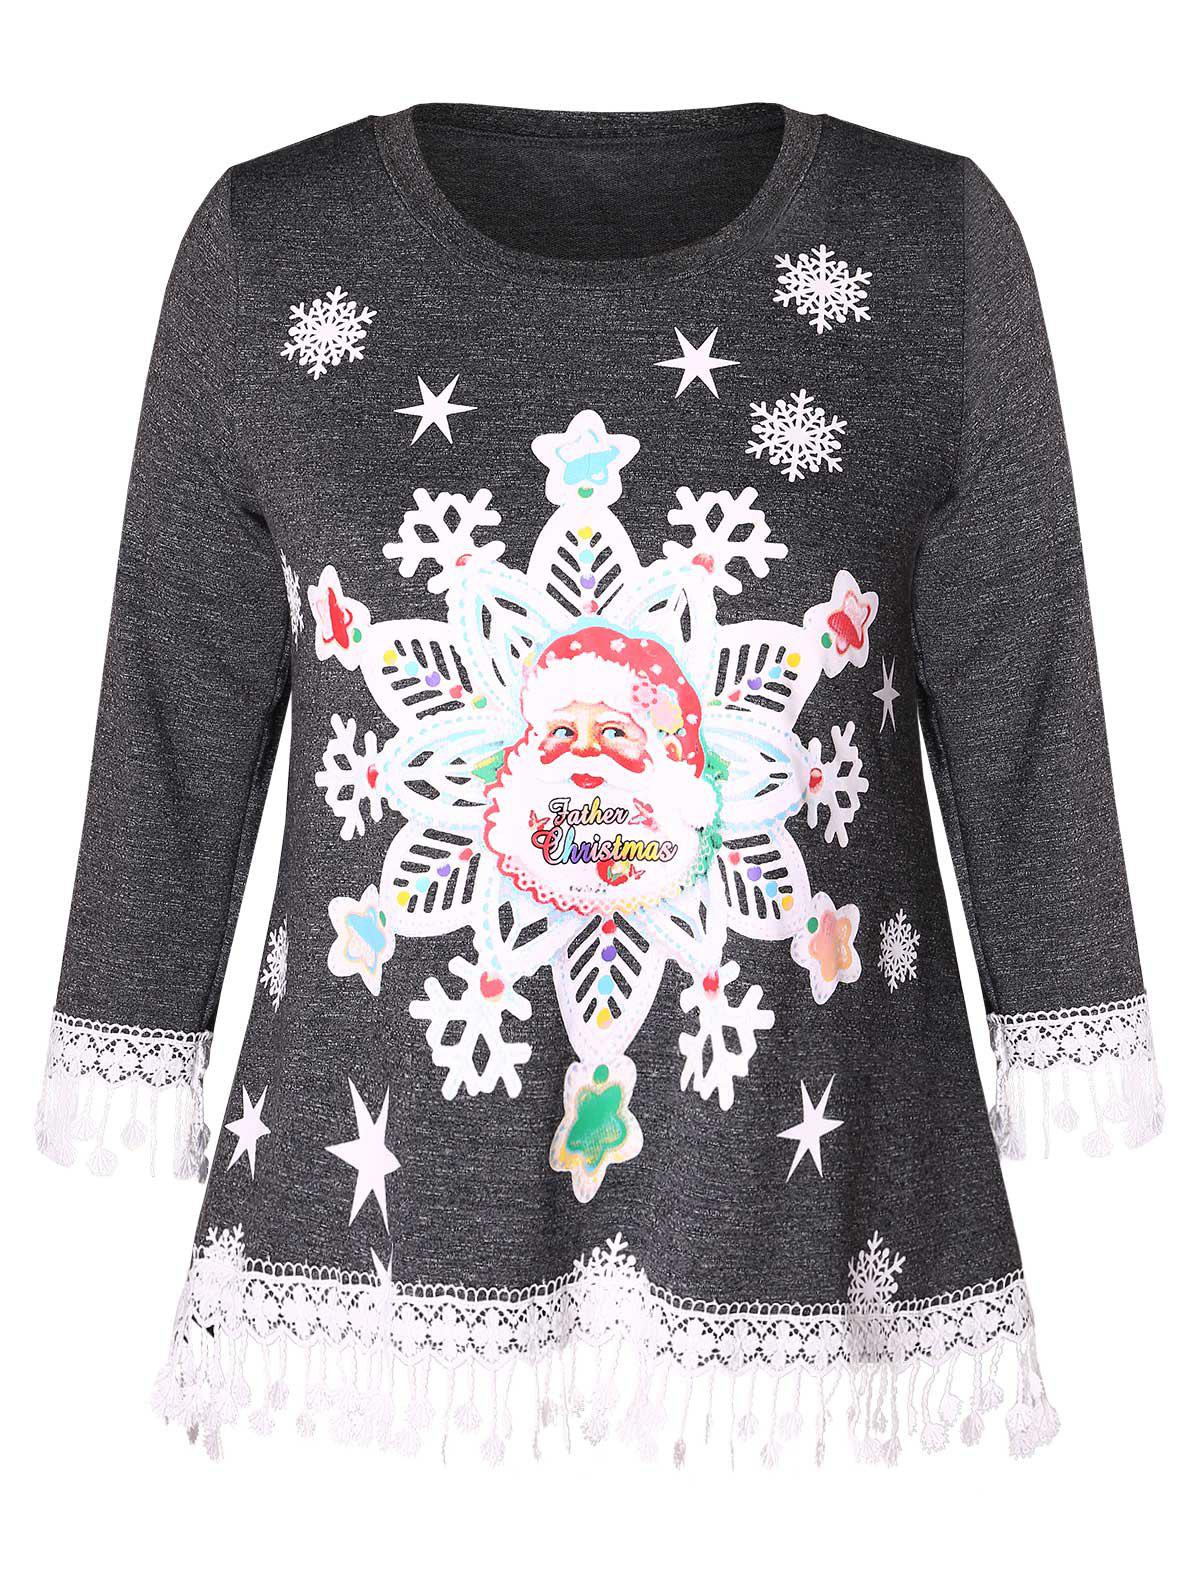 Affordable Christmas Santa Claus Print Lace Panel Plus Size T-shirt